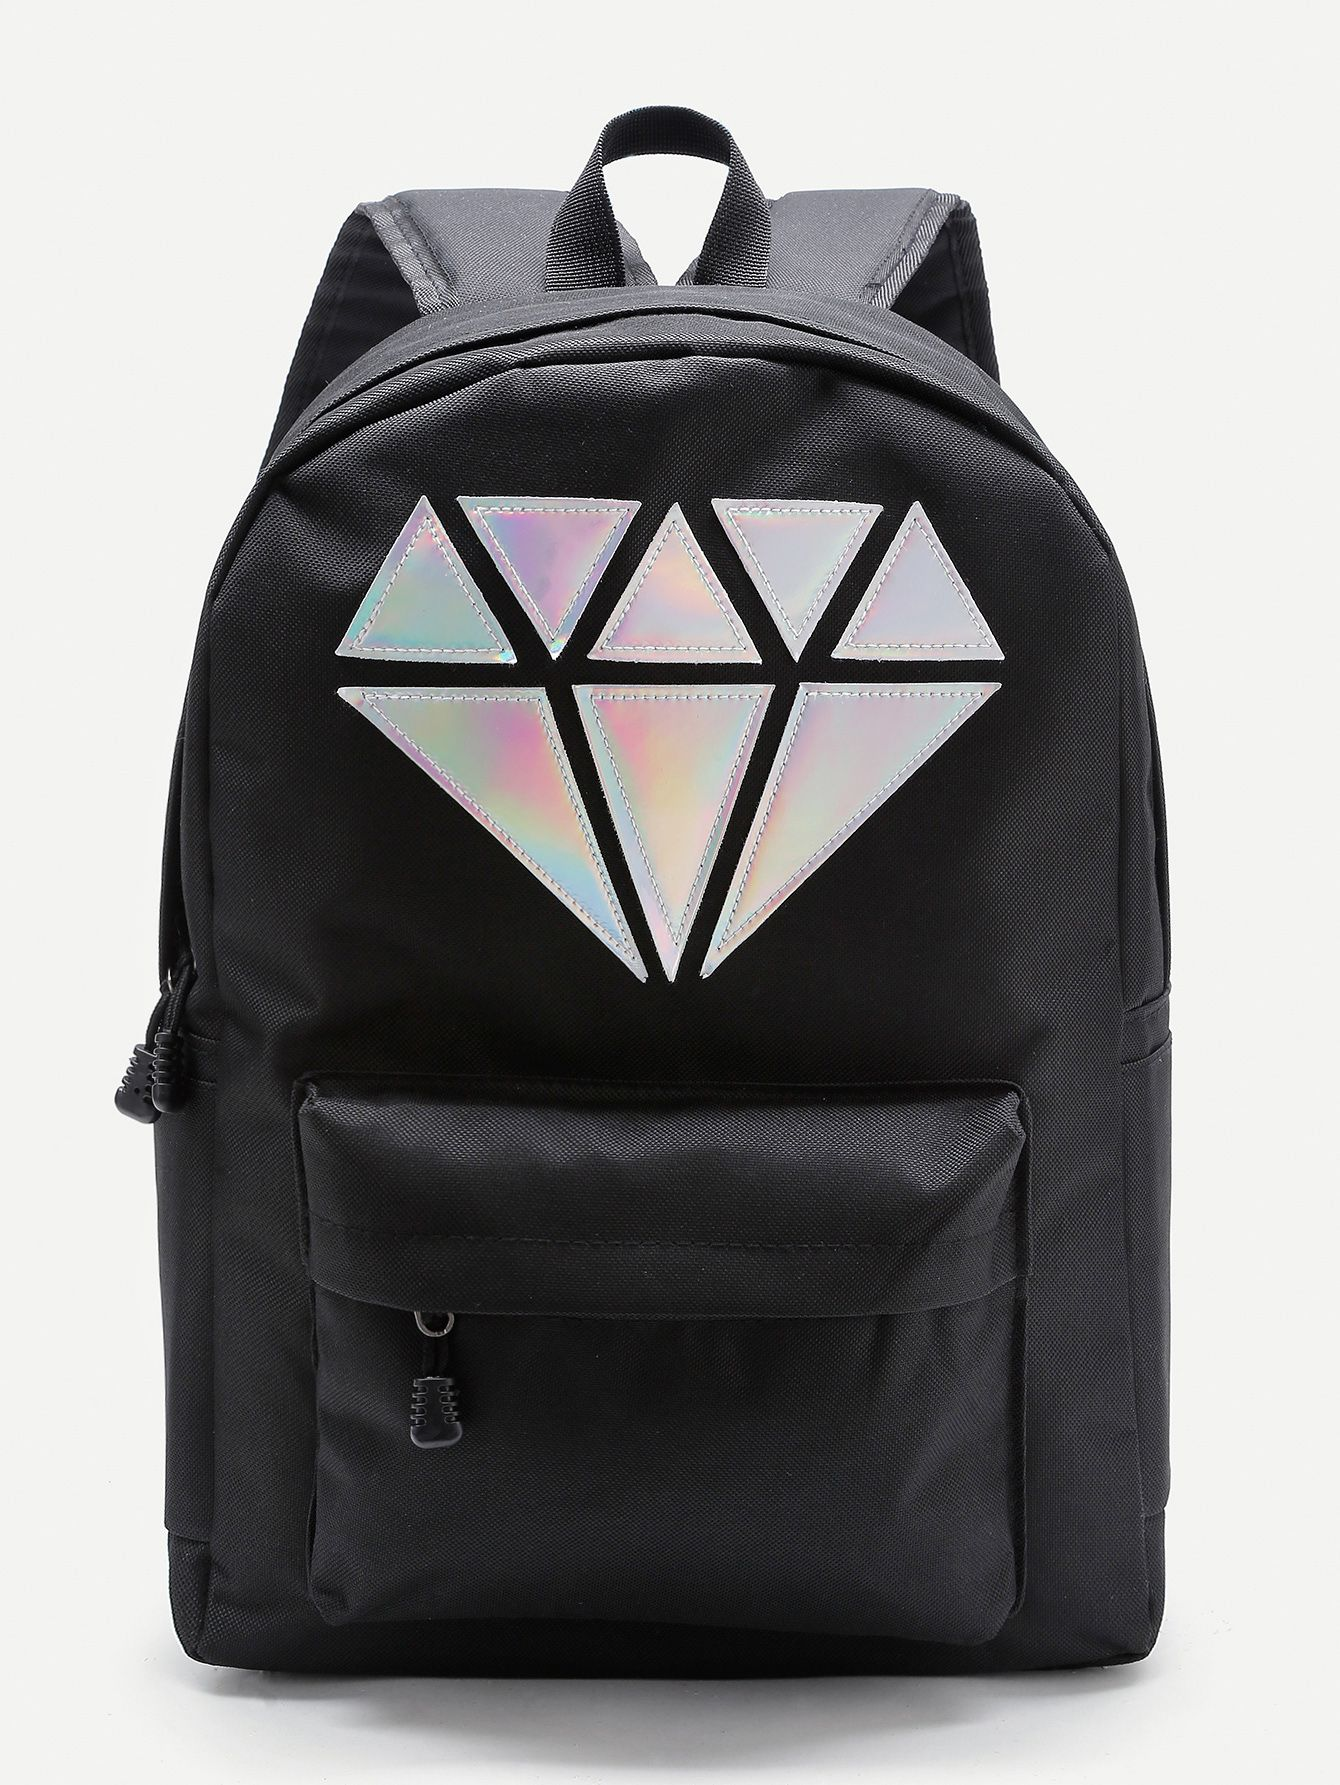 9bf344ae33 Shop Metallic Diamond Patch Pocket Front Backpack online. SheIn offers  Metallic Diamond Patch Pocket Front Backpack & more to fit your fashionable  needs.